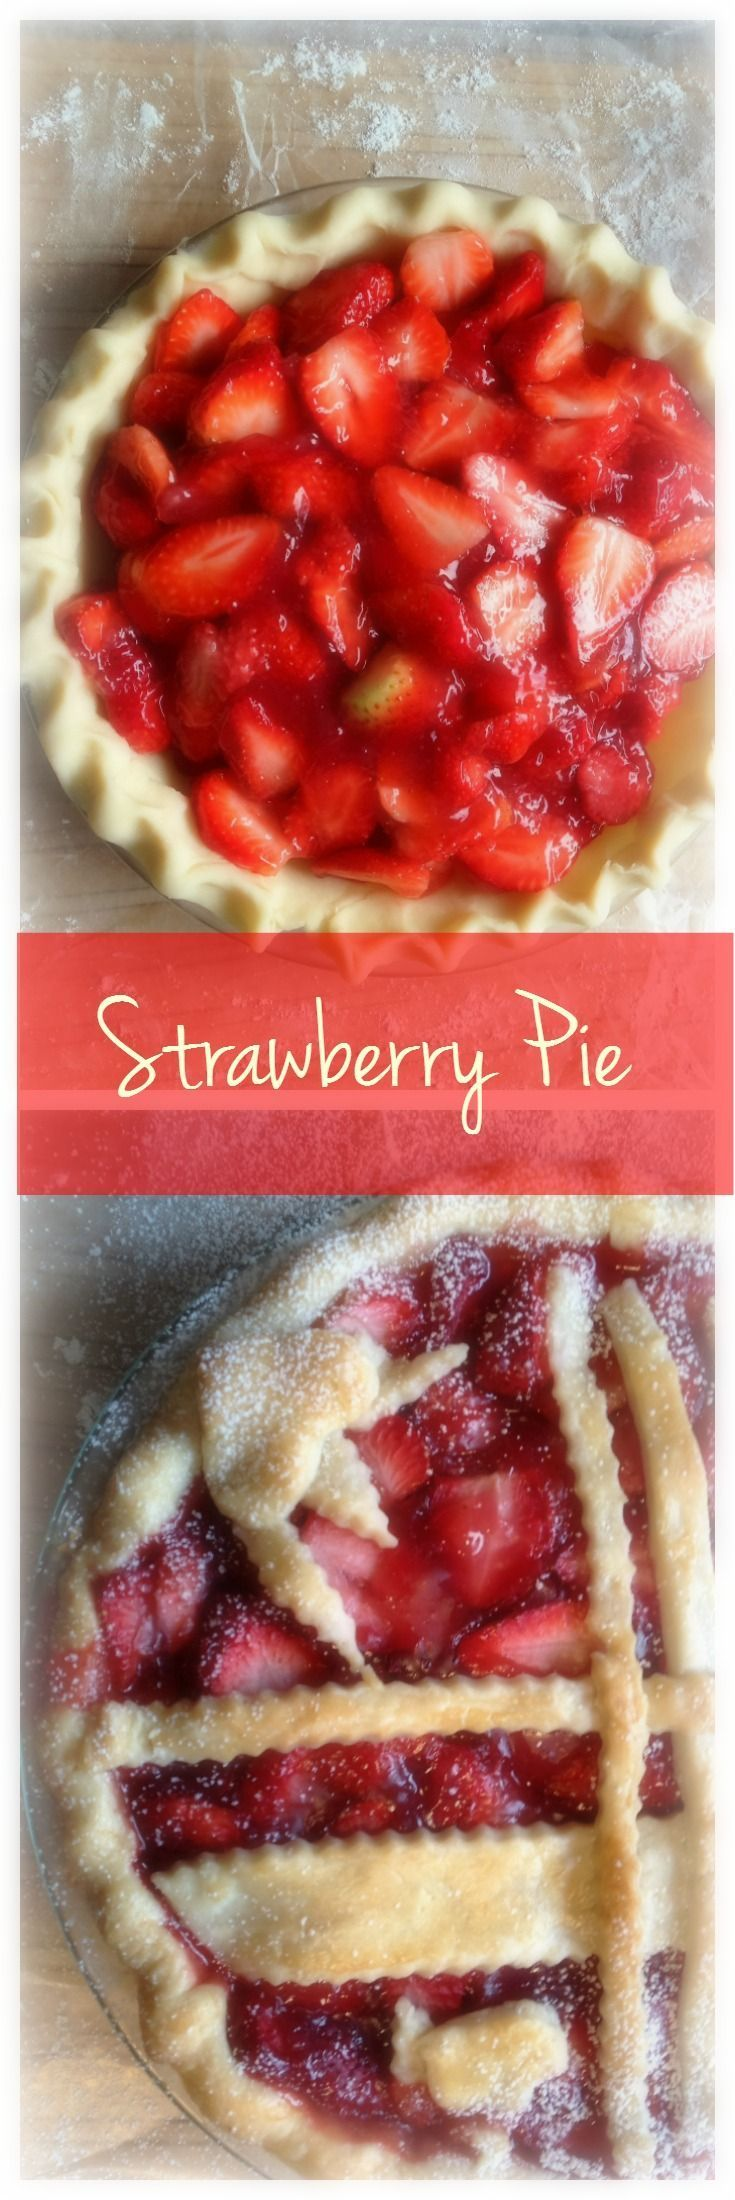 Strawberry Pie, Maple Syrup and Joie de Vivre!  I just won't eat fresh strawberries any more without maple syrup.  The sweet tang of freshly sliced berries dripping with the rich golden silky flavour of real maple syrup, well just try it.  I guarantee you